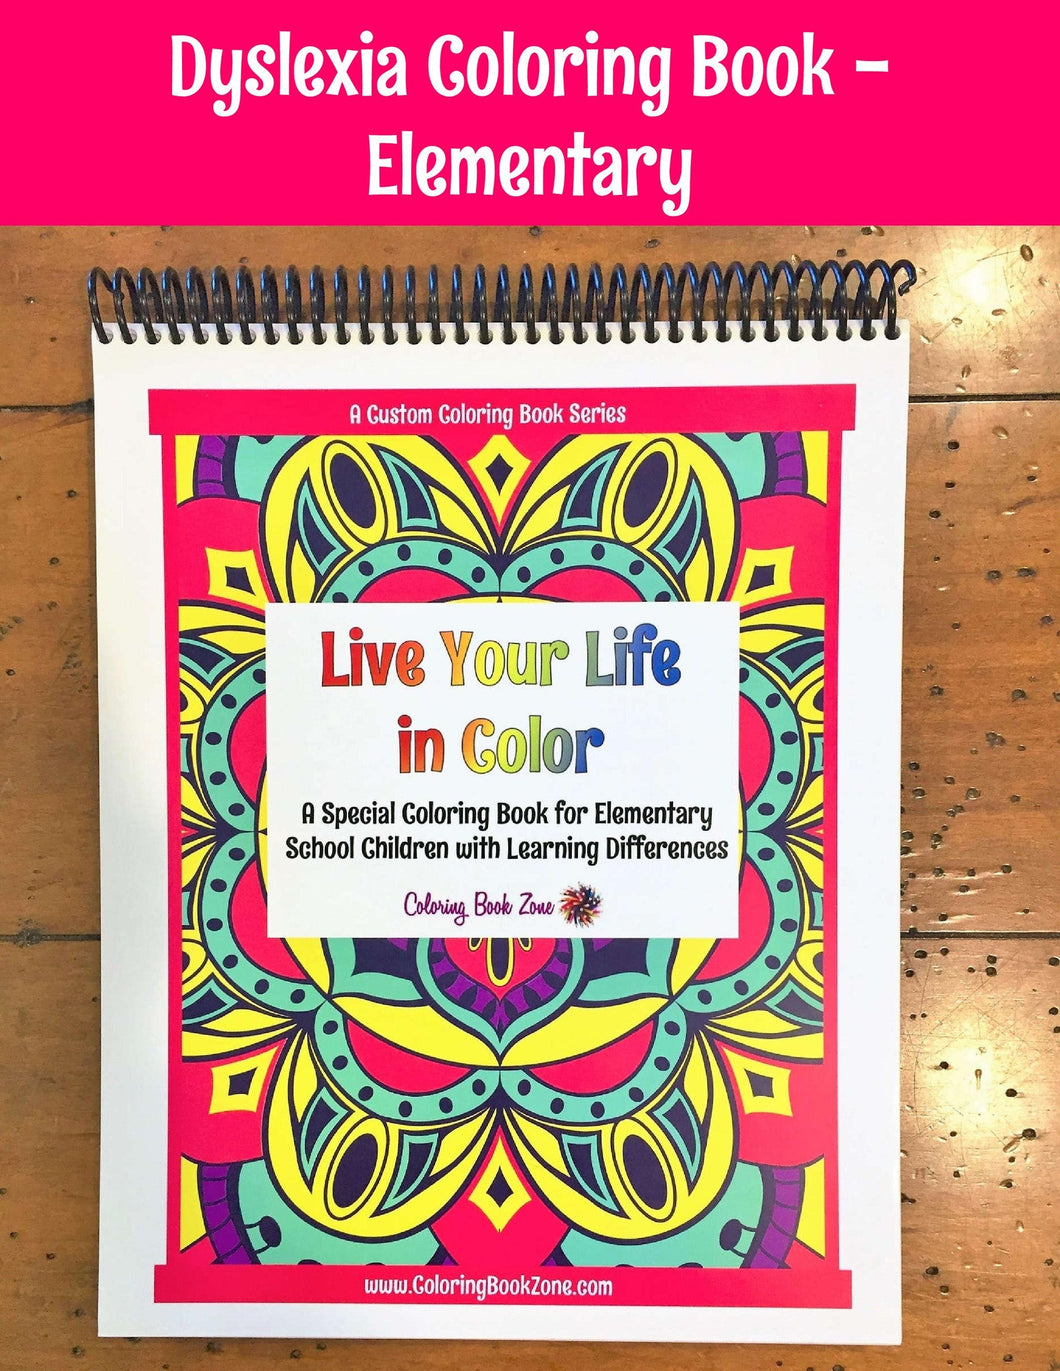 Coloring/Activity Book for Elementary Students with Learning Differences - Coloring Book Zone